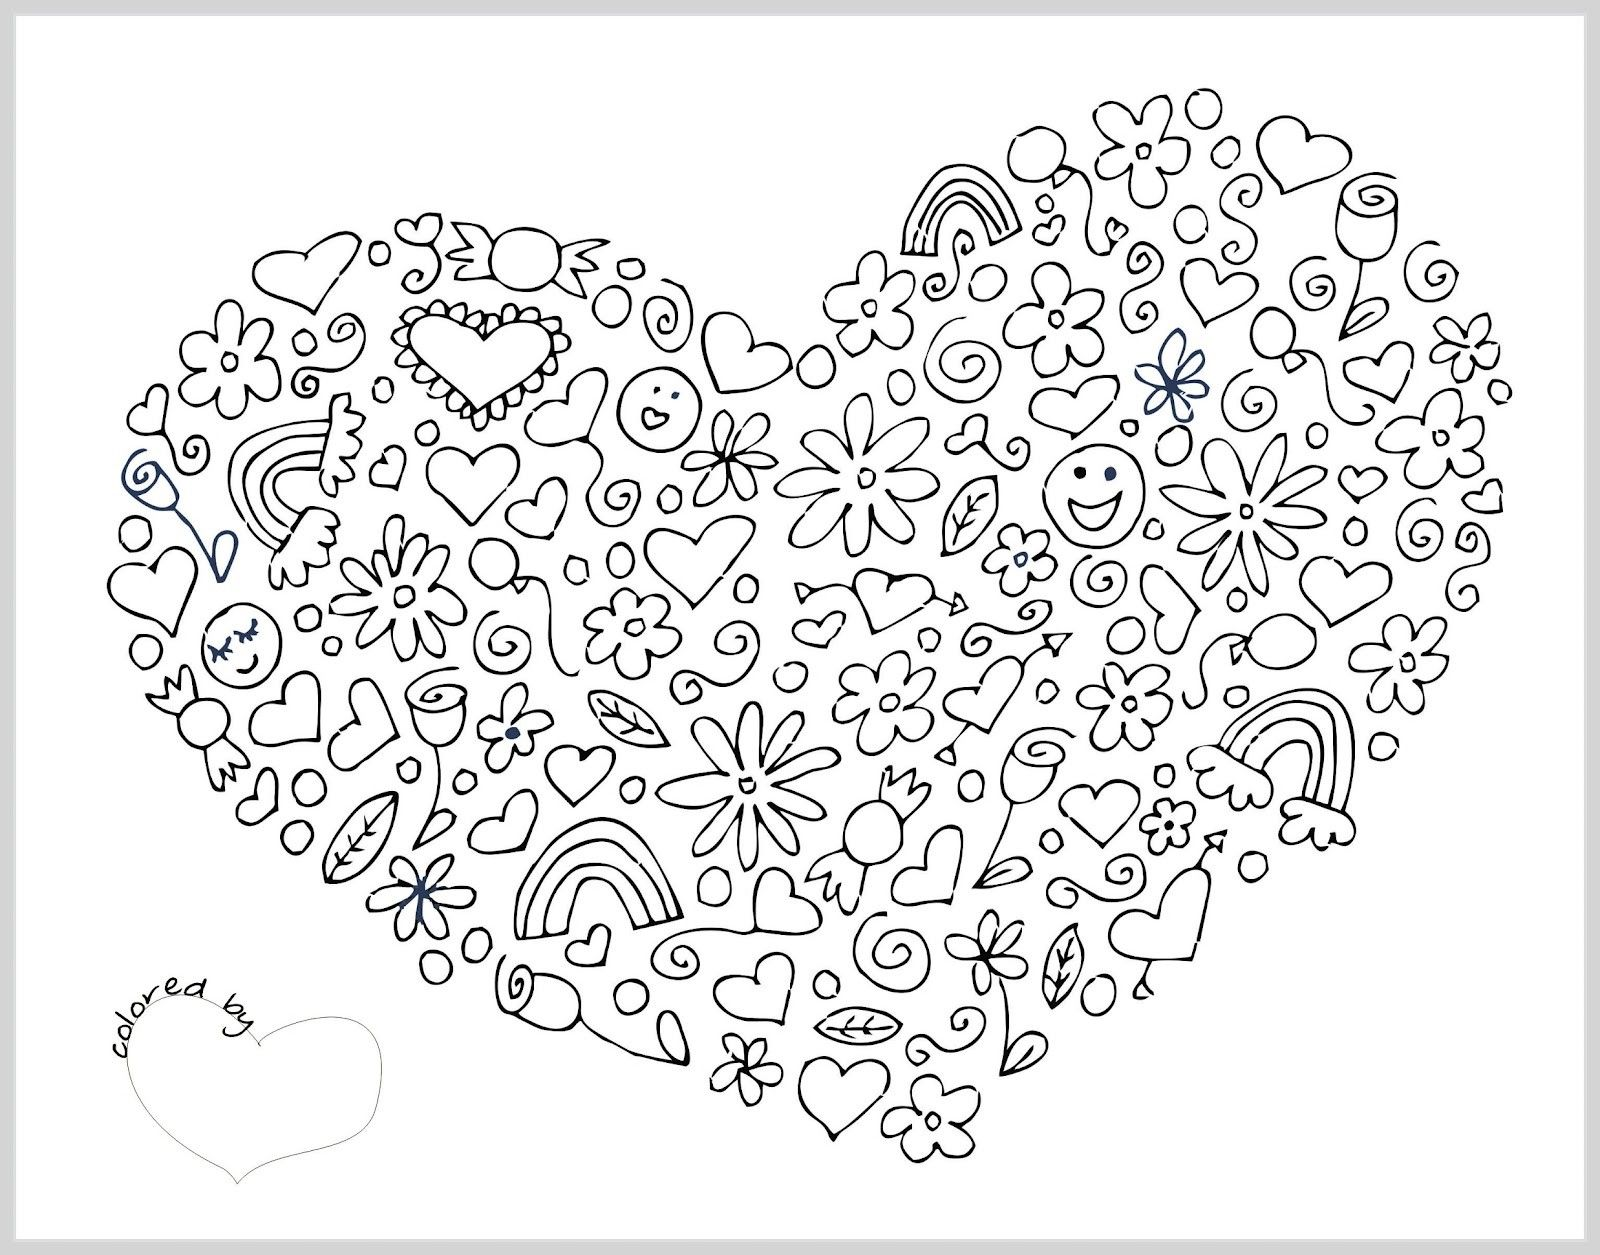 Printable coloring pages love - Love Color Pages Love Coloring Pages Coloring Pages Ideas